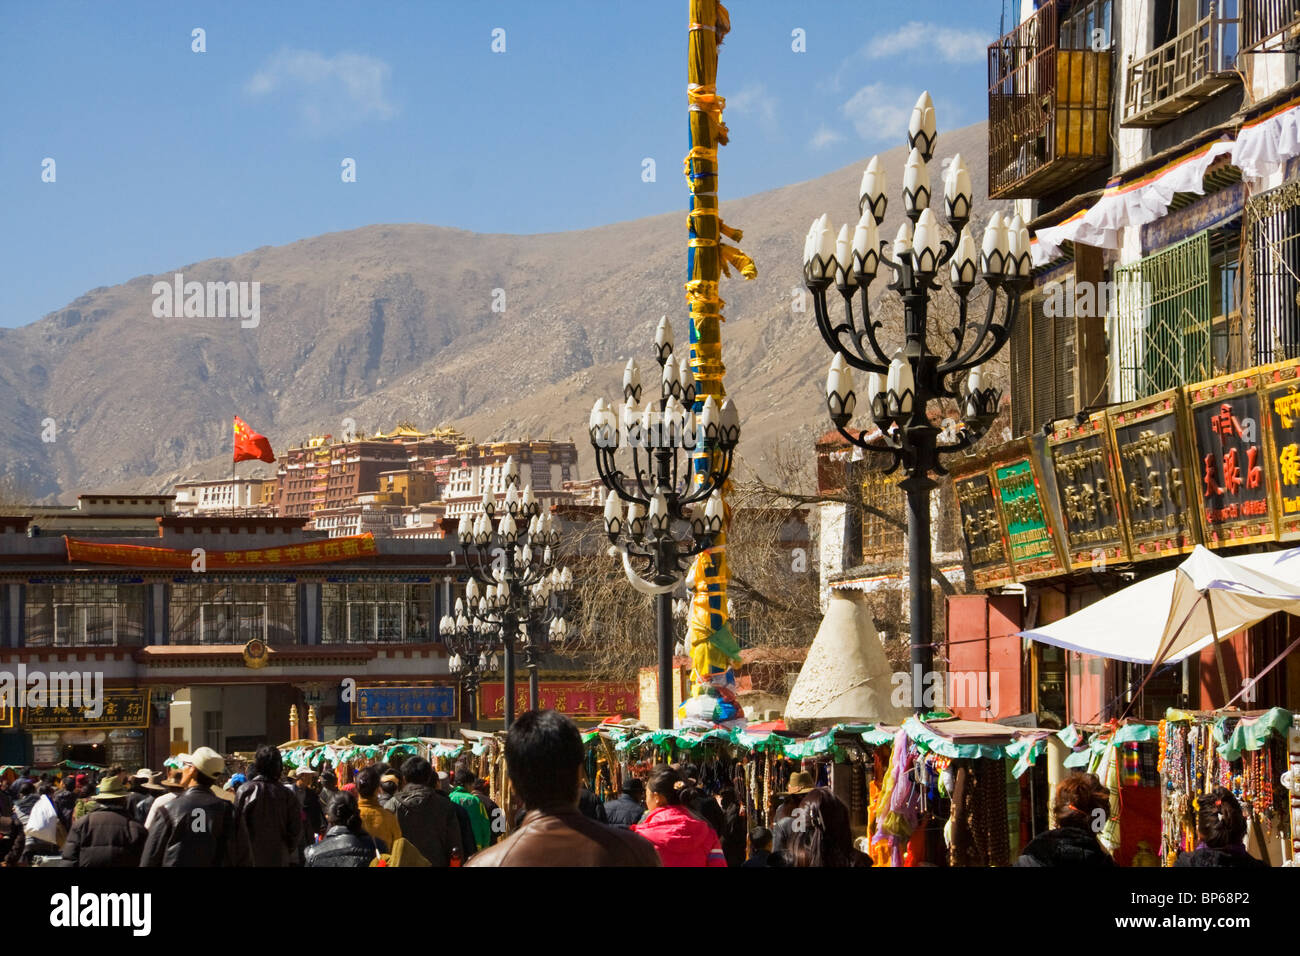 The view of the Potala palace from the Barkhor circuit in Lhasa, Tibet - Stock Image